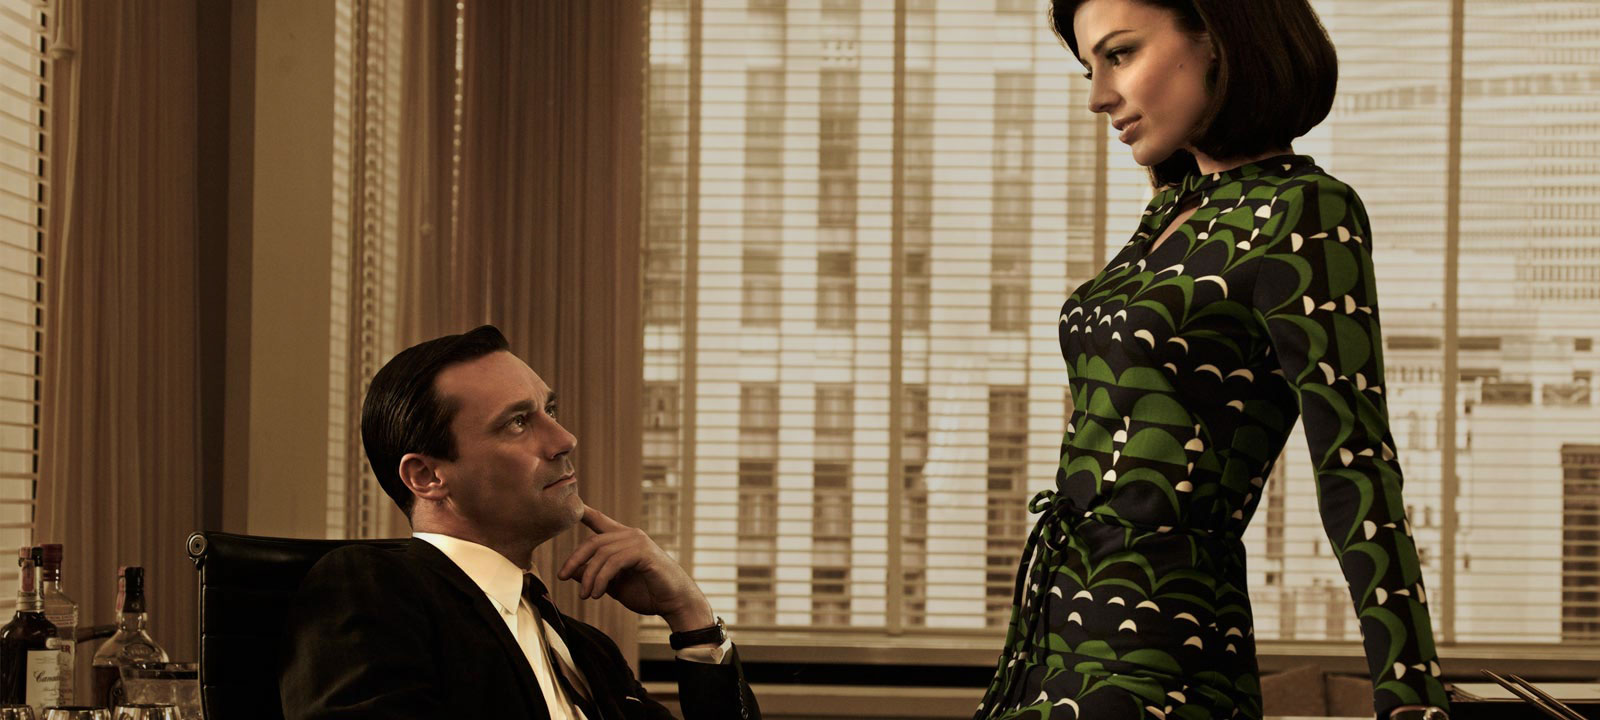 mad men season 5 episodes amc mm s5 don megan s